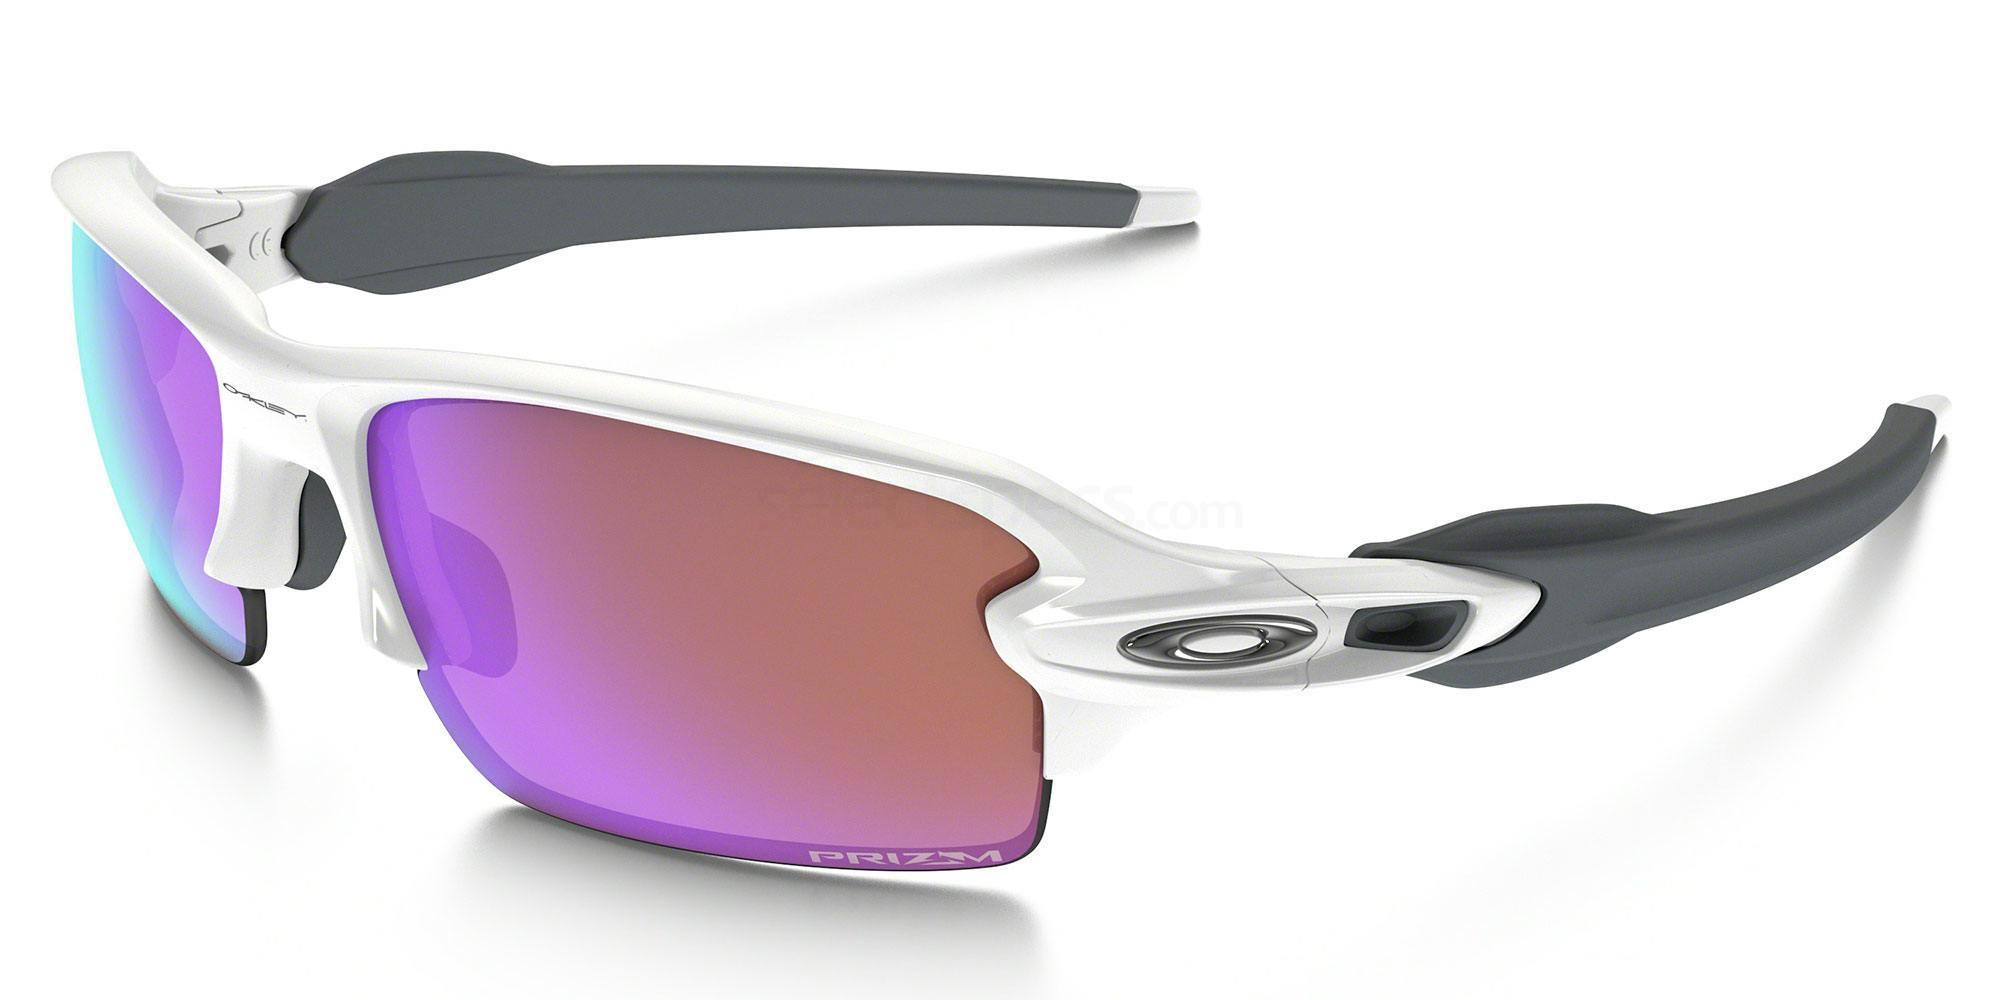 929506 OO9295 PRIZM GOLF FLAK 2.0 Sunglasses, Oakley